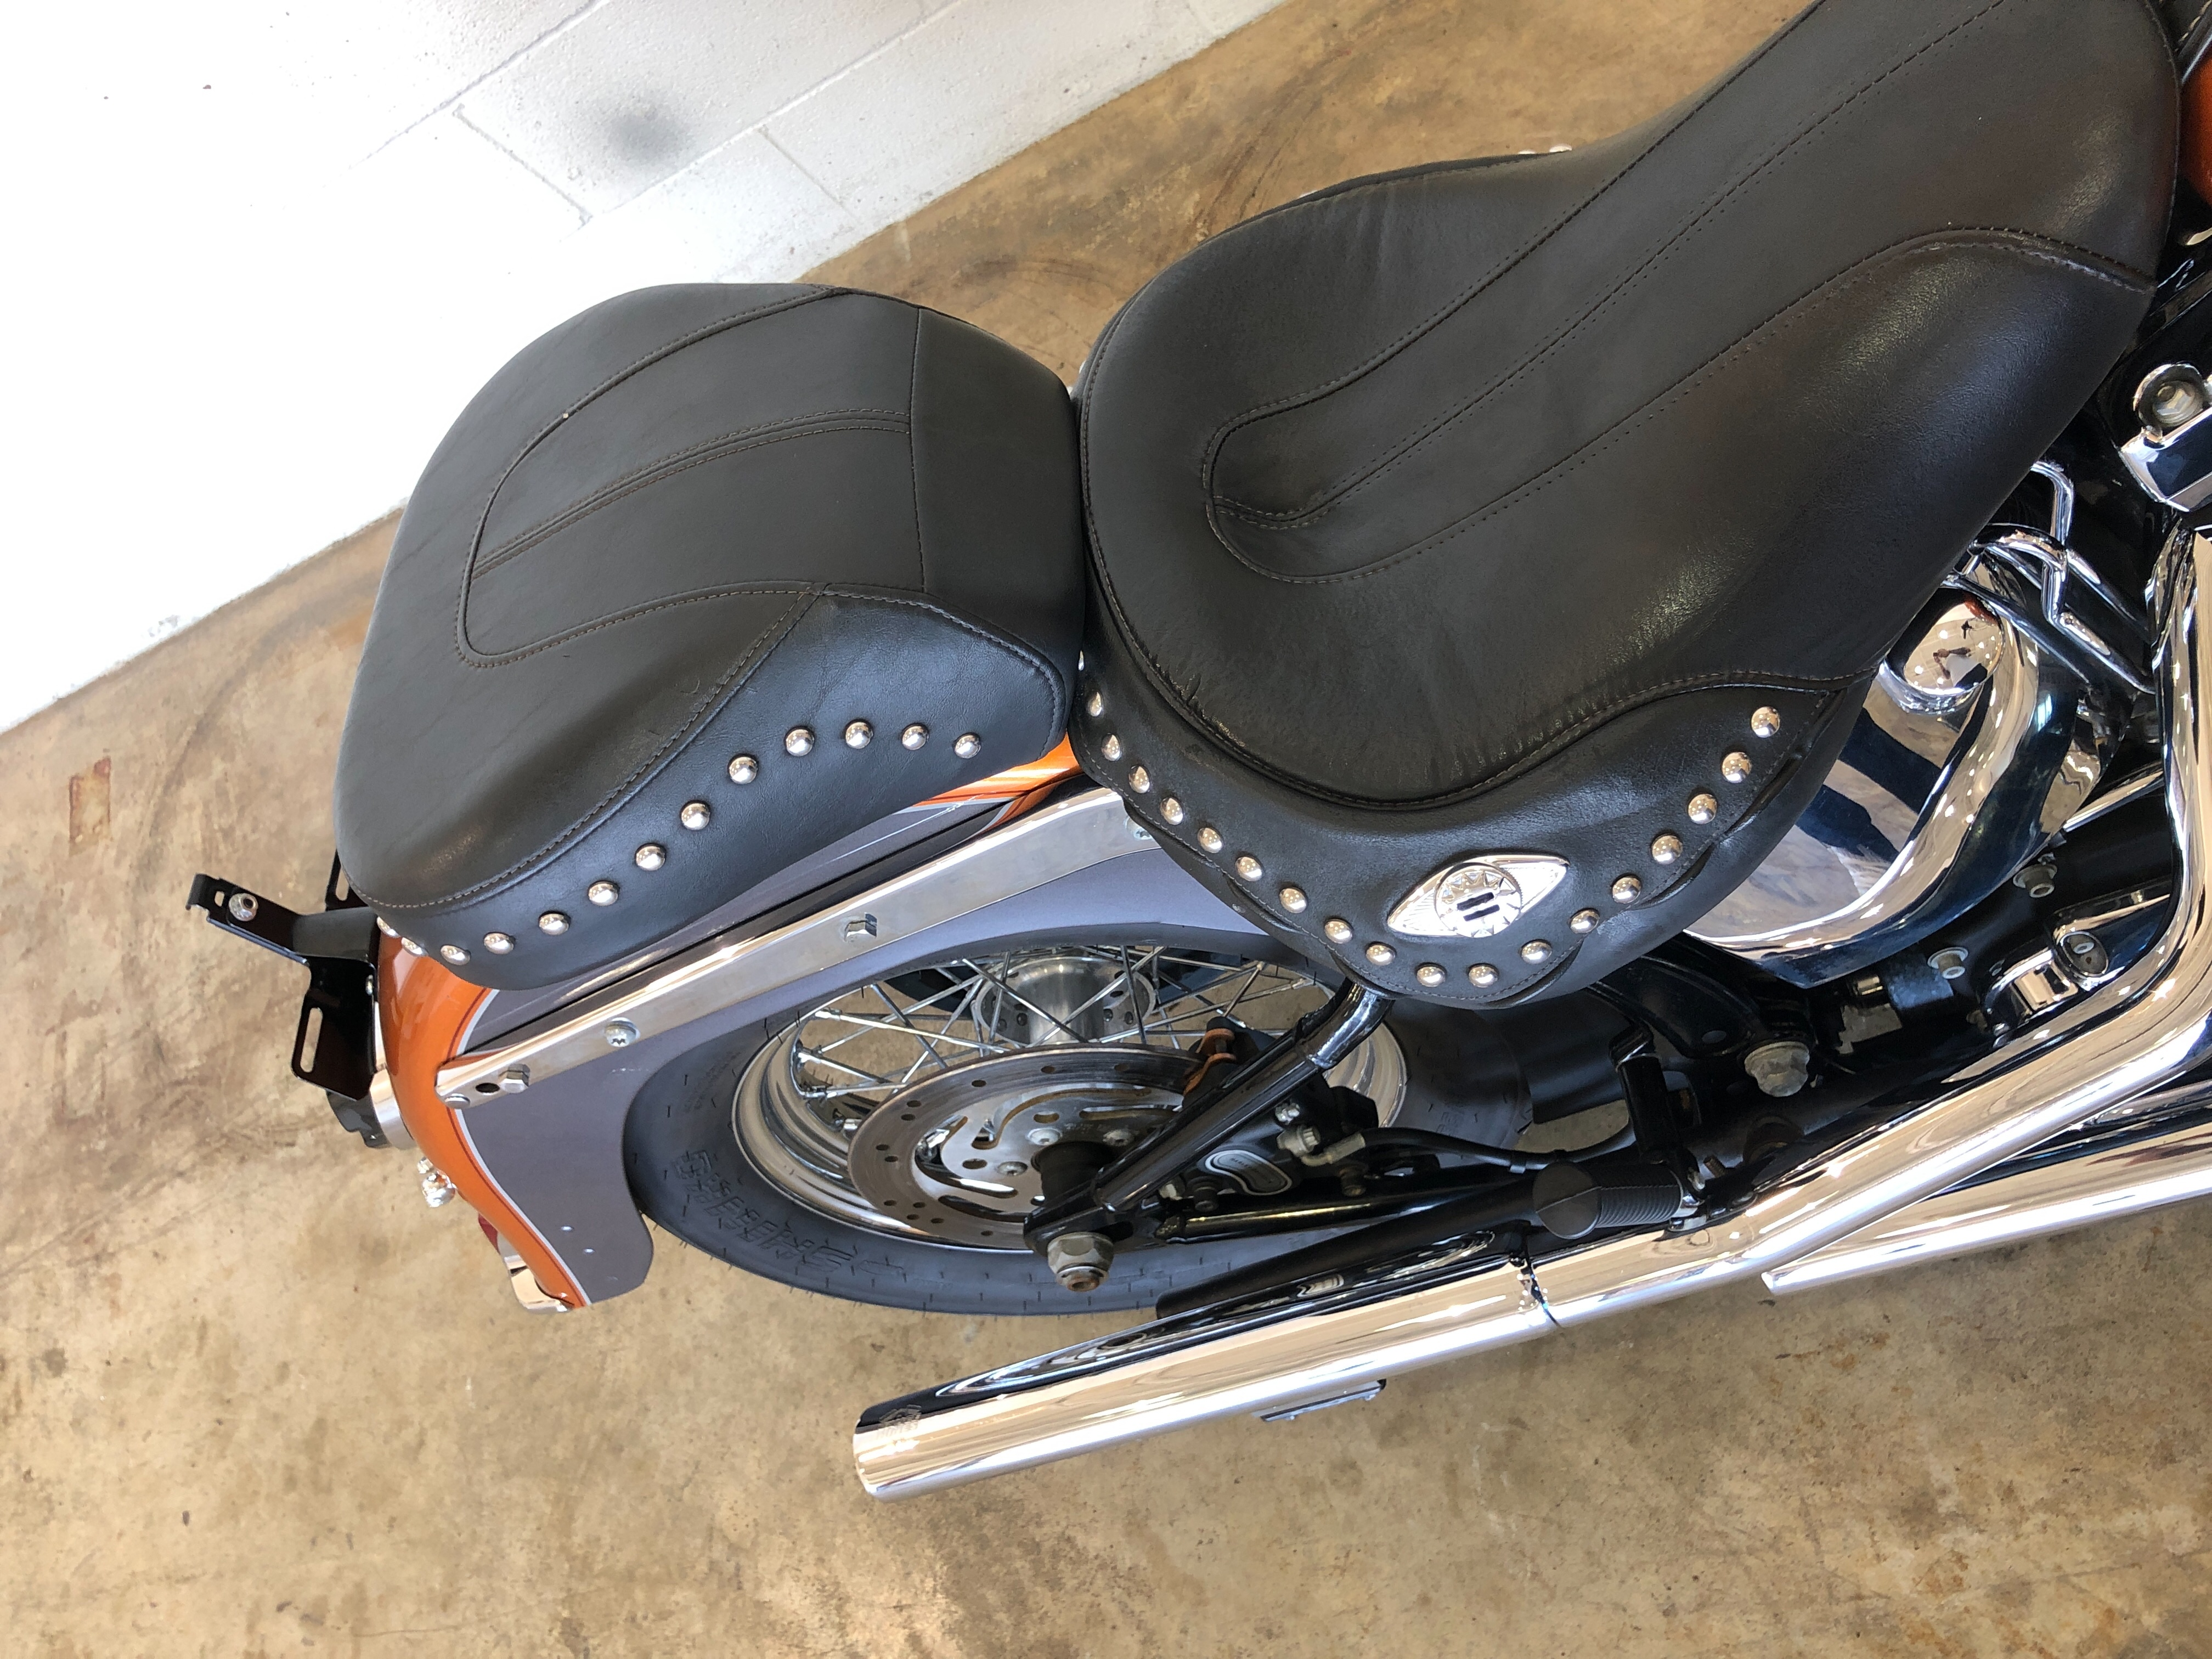 2015 Harley-Davidson Softail Heritage Softail Classic at Twisted Cycles